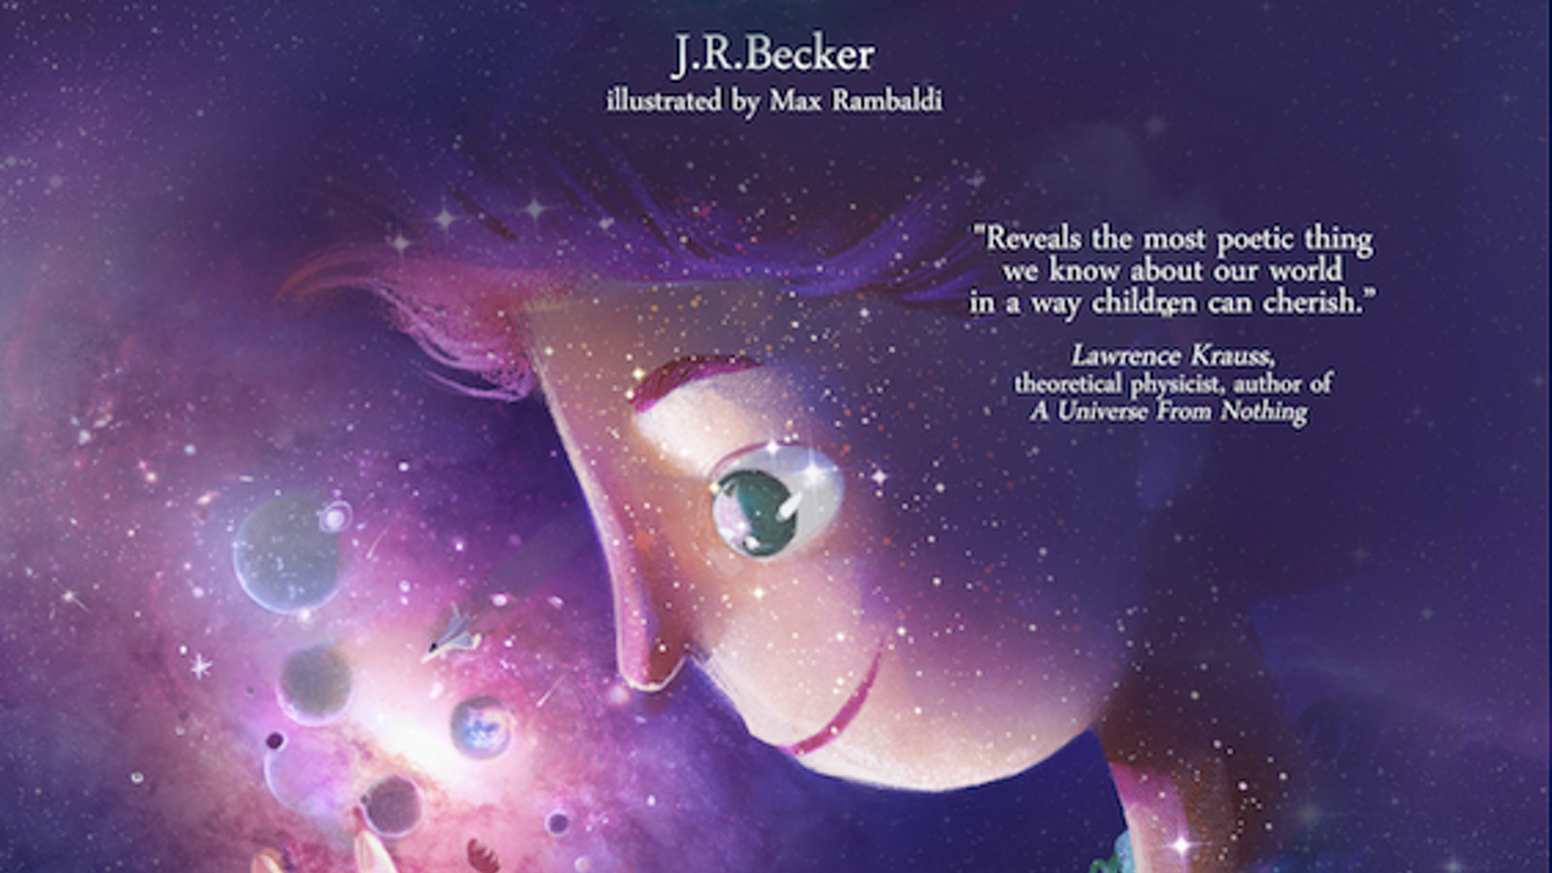 A kids' book exploring the big bang, and how we're all made of stars - and more special, interconnected, and 'larger' than we think.